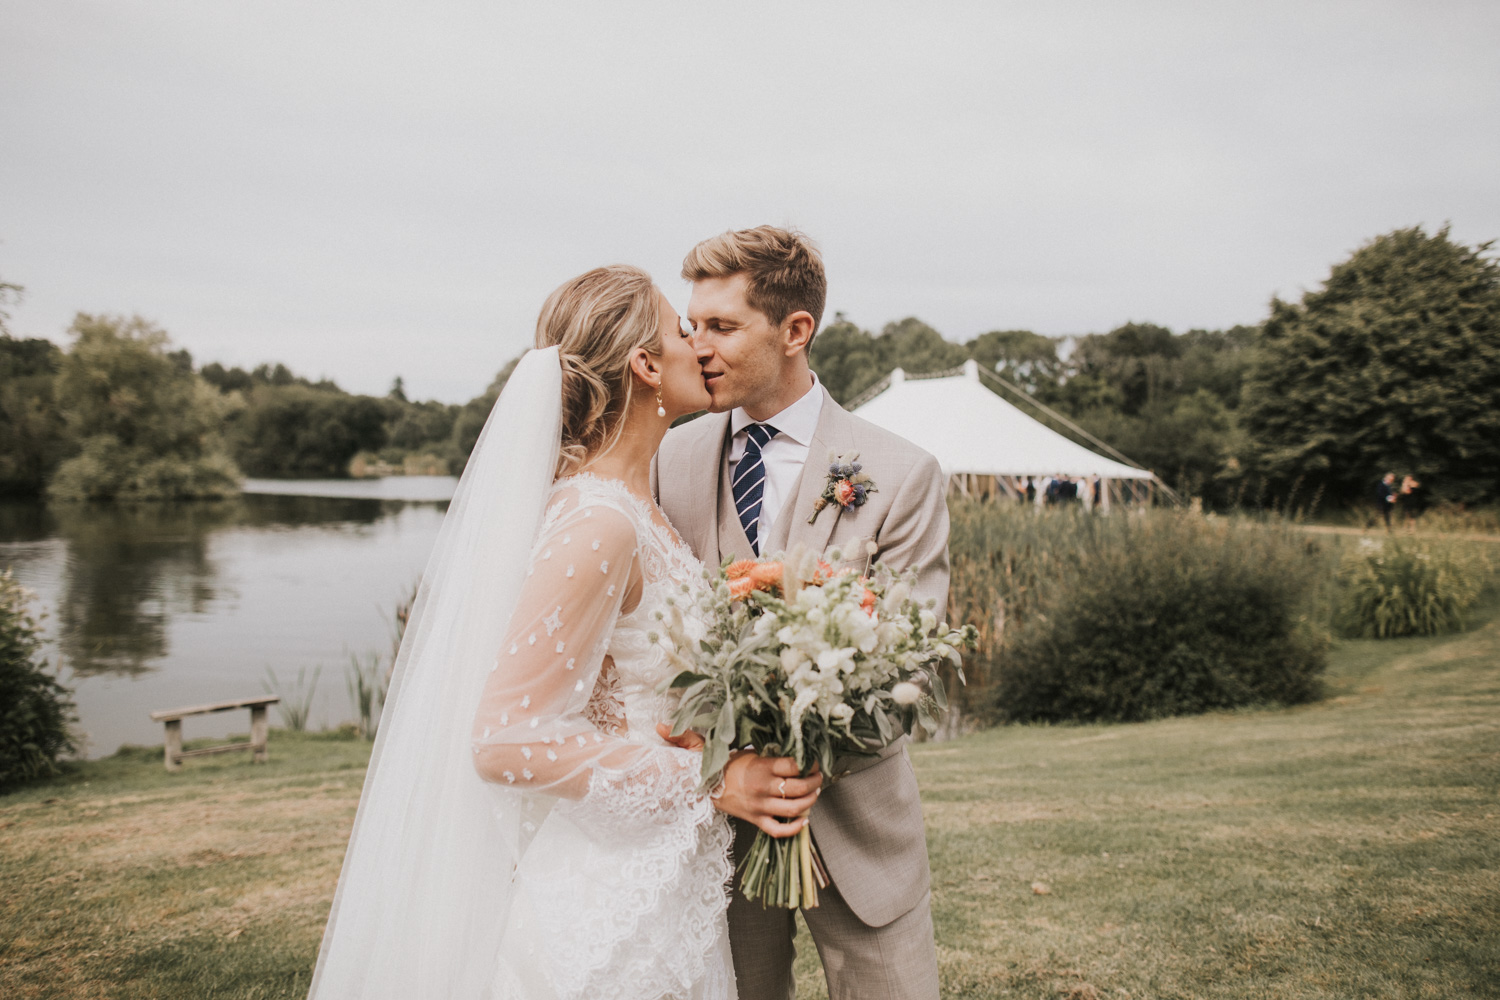 OUR WEDDING DAY // WEST SUSSEX, UK OUTDOOR WEDDING